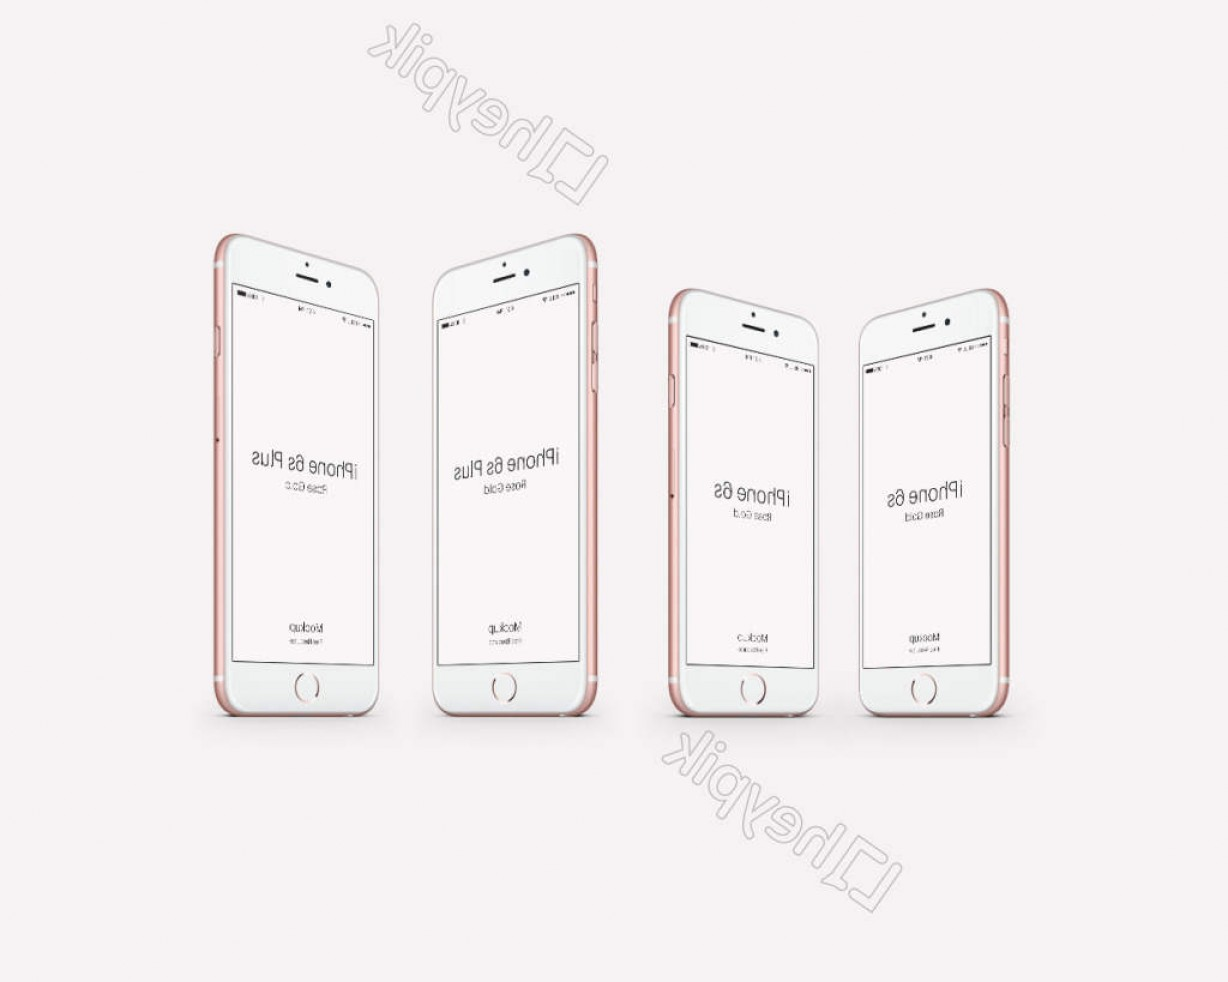 White IPhone Vector Png: Iphone S Psd Rose Gold Prototype